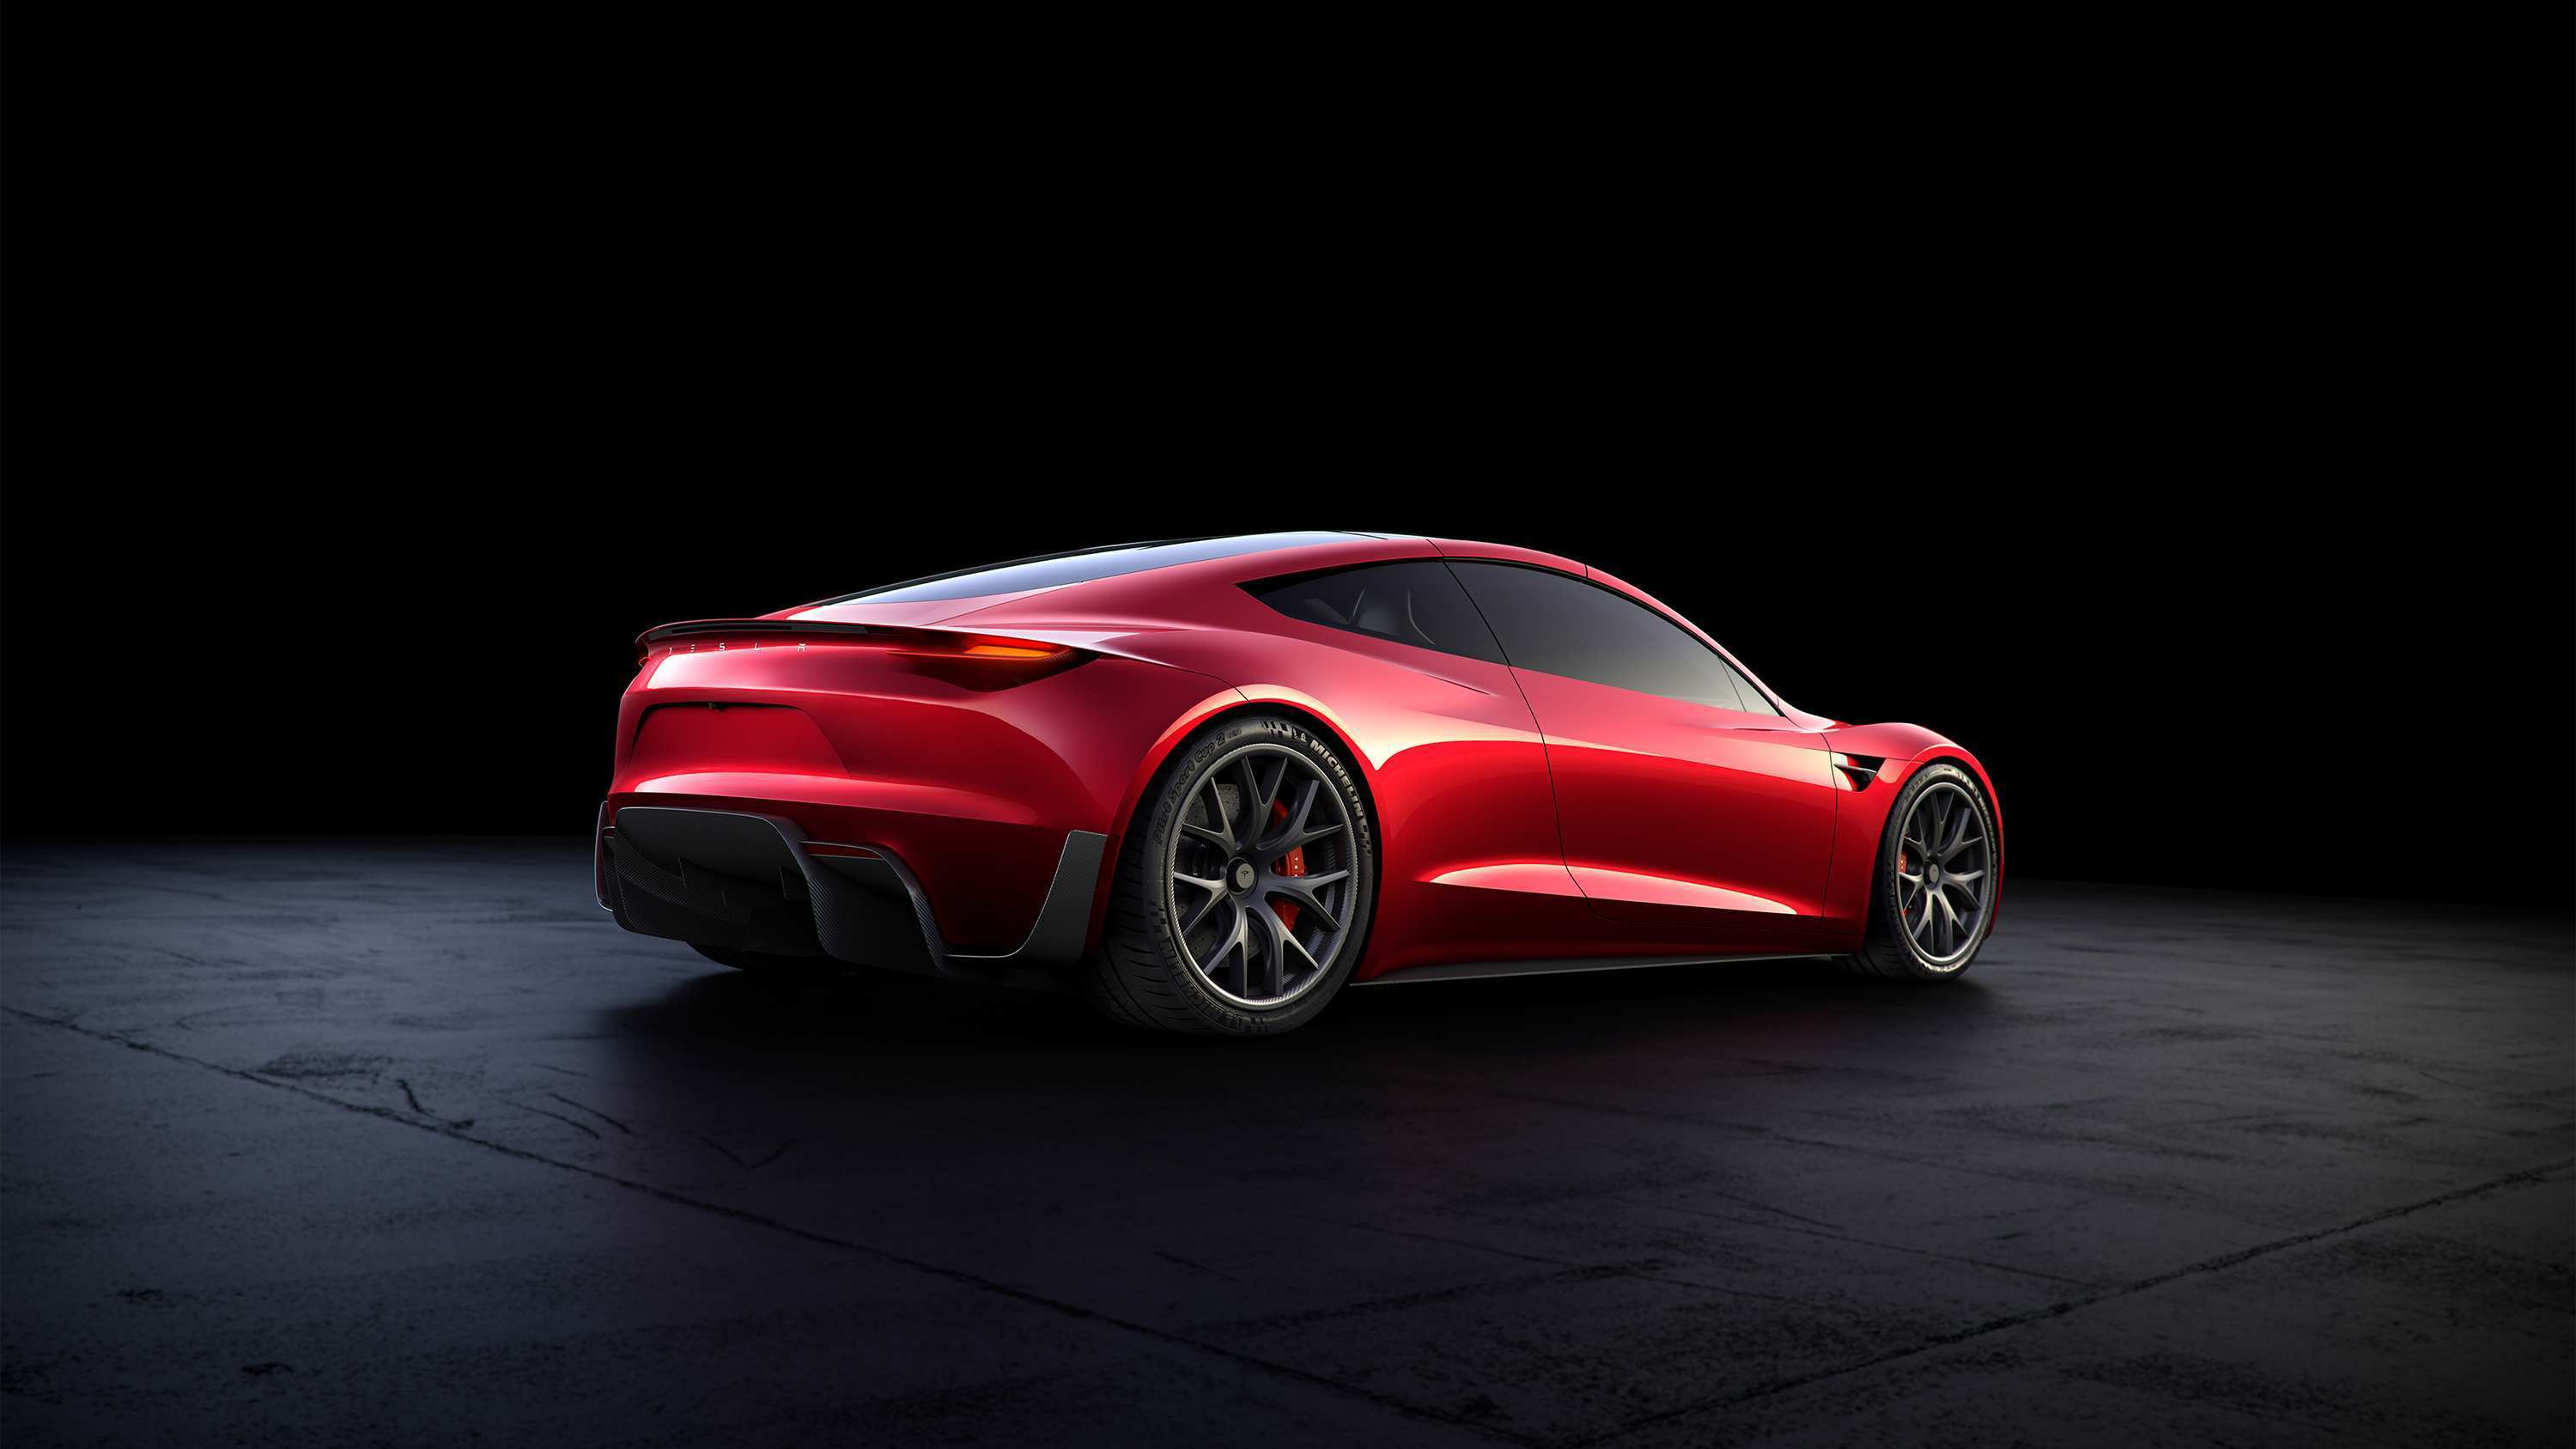 31 Gallery of 2020 Tesla Roadster Weight 2 Picture for 2020 Tesla Roadster Weight 2